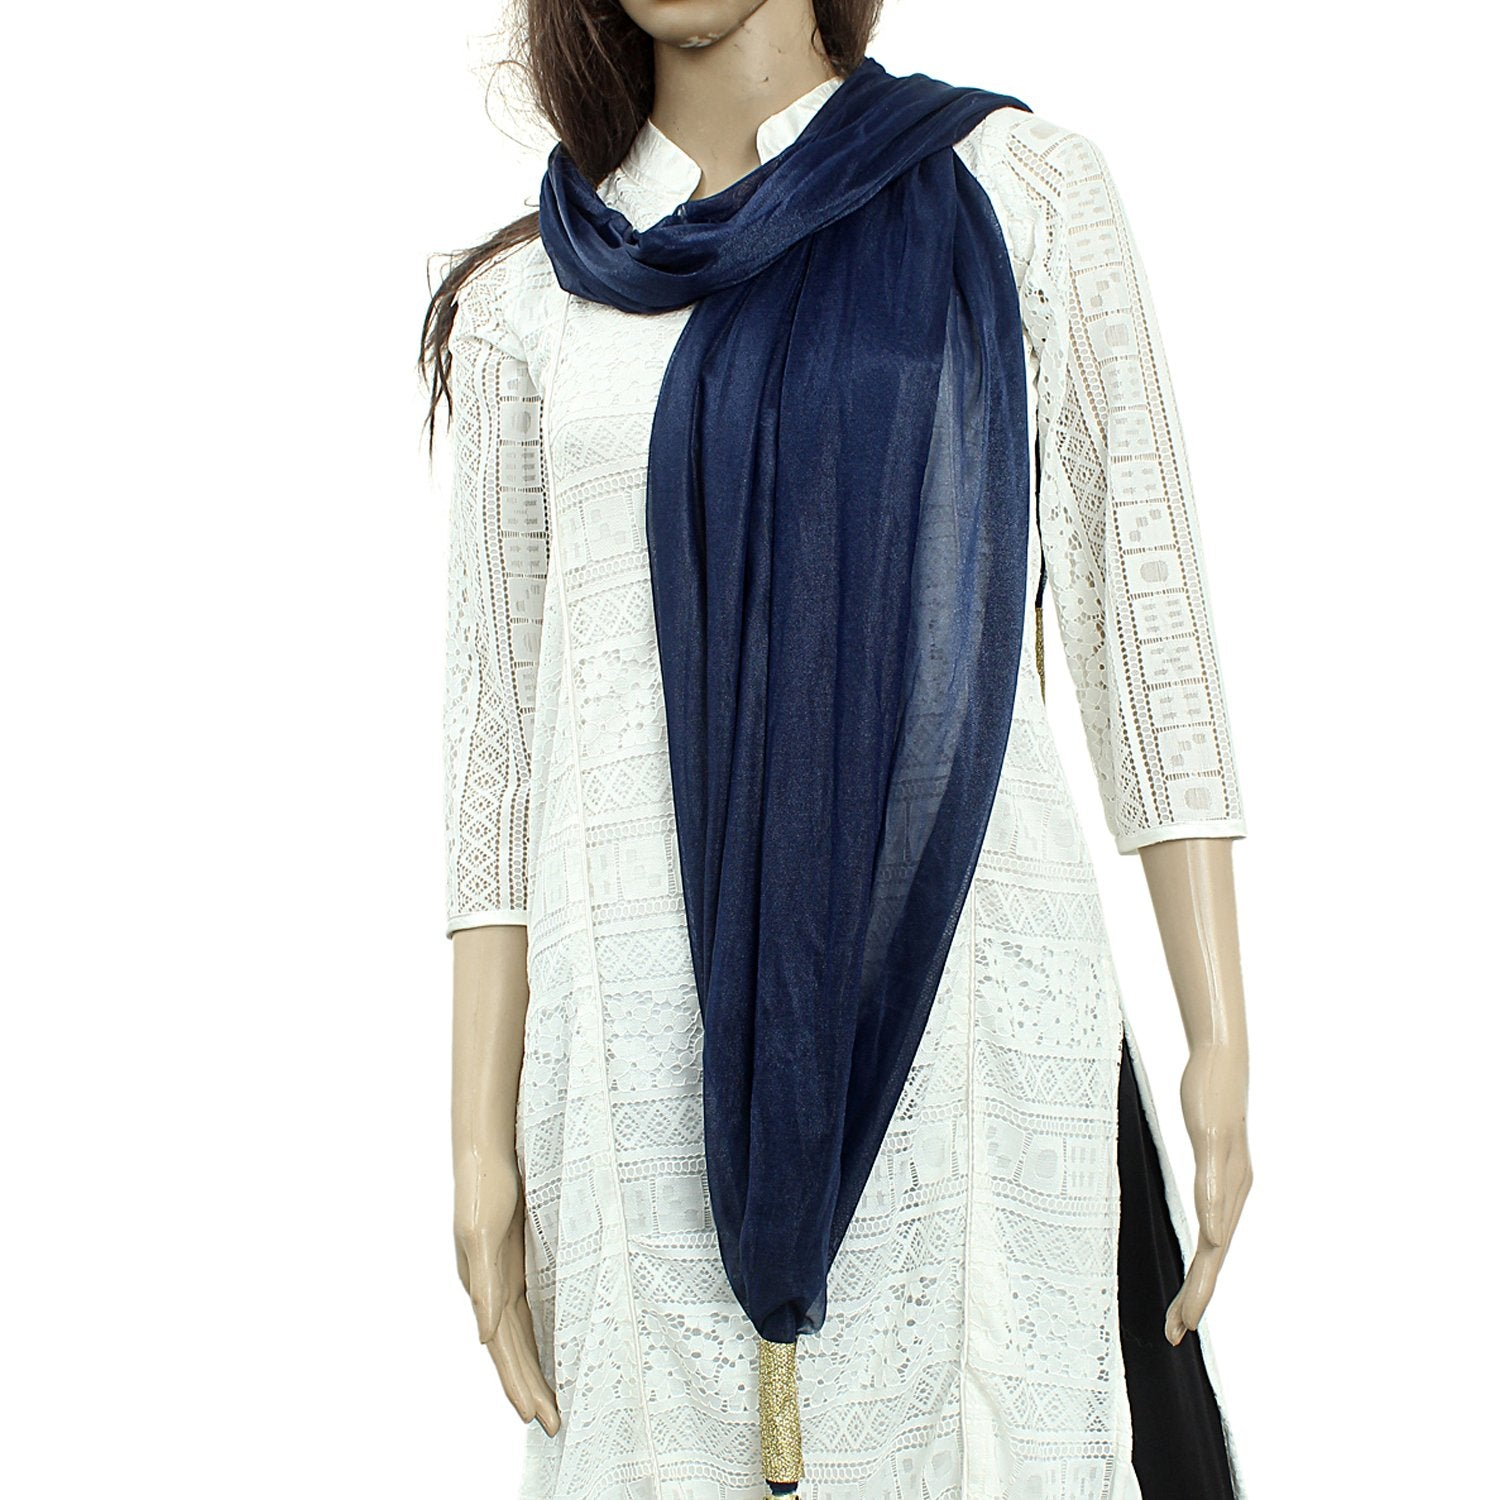 Woman's Dupatta with Pom Pom Lace (Dark Blue) - Bagaholics Gift